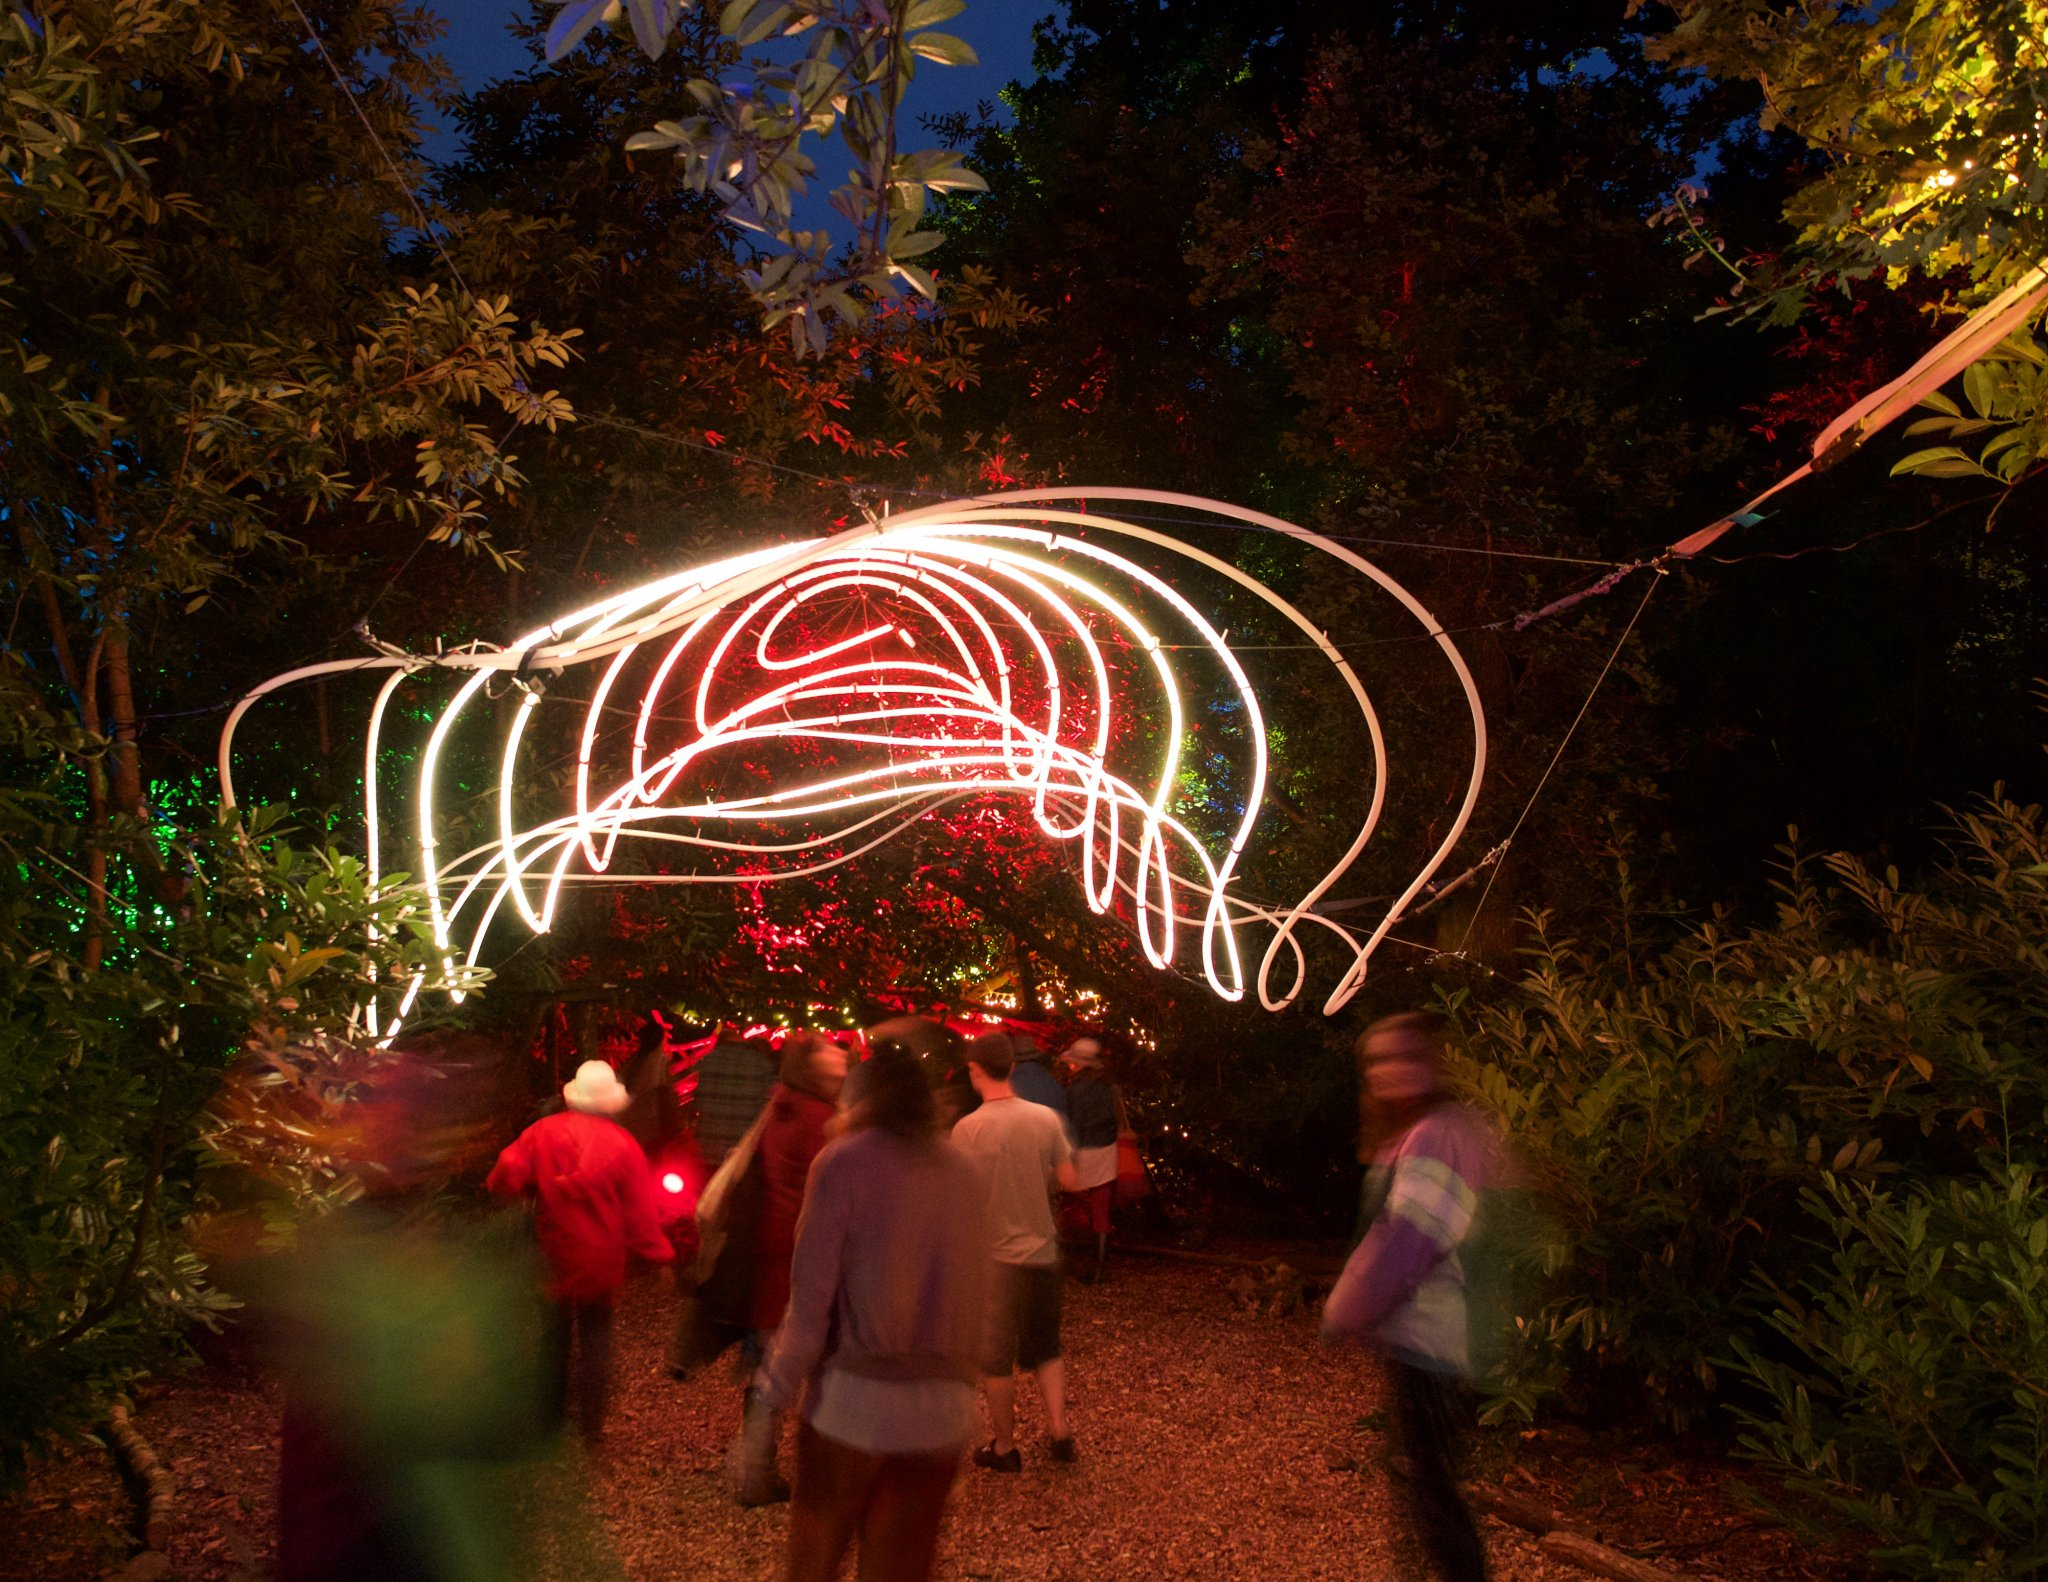 Spiral of Lights Interactive Installation in a Forest